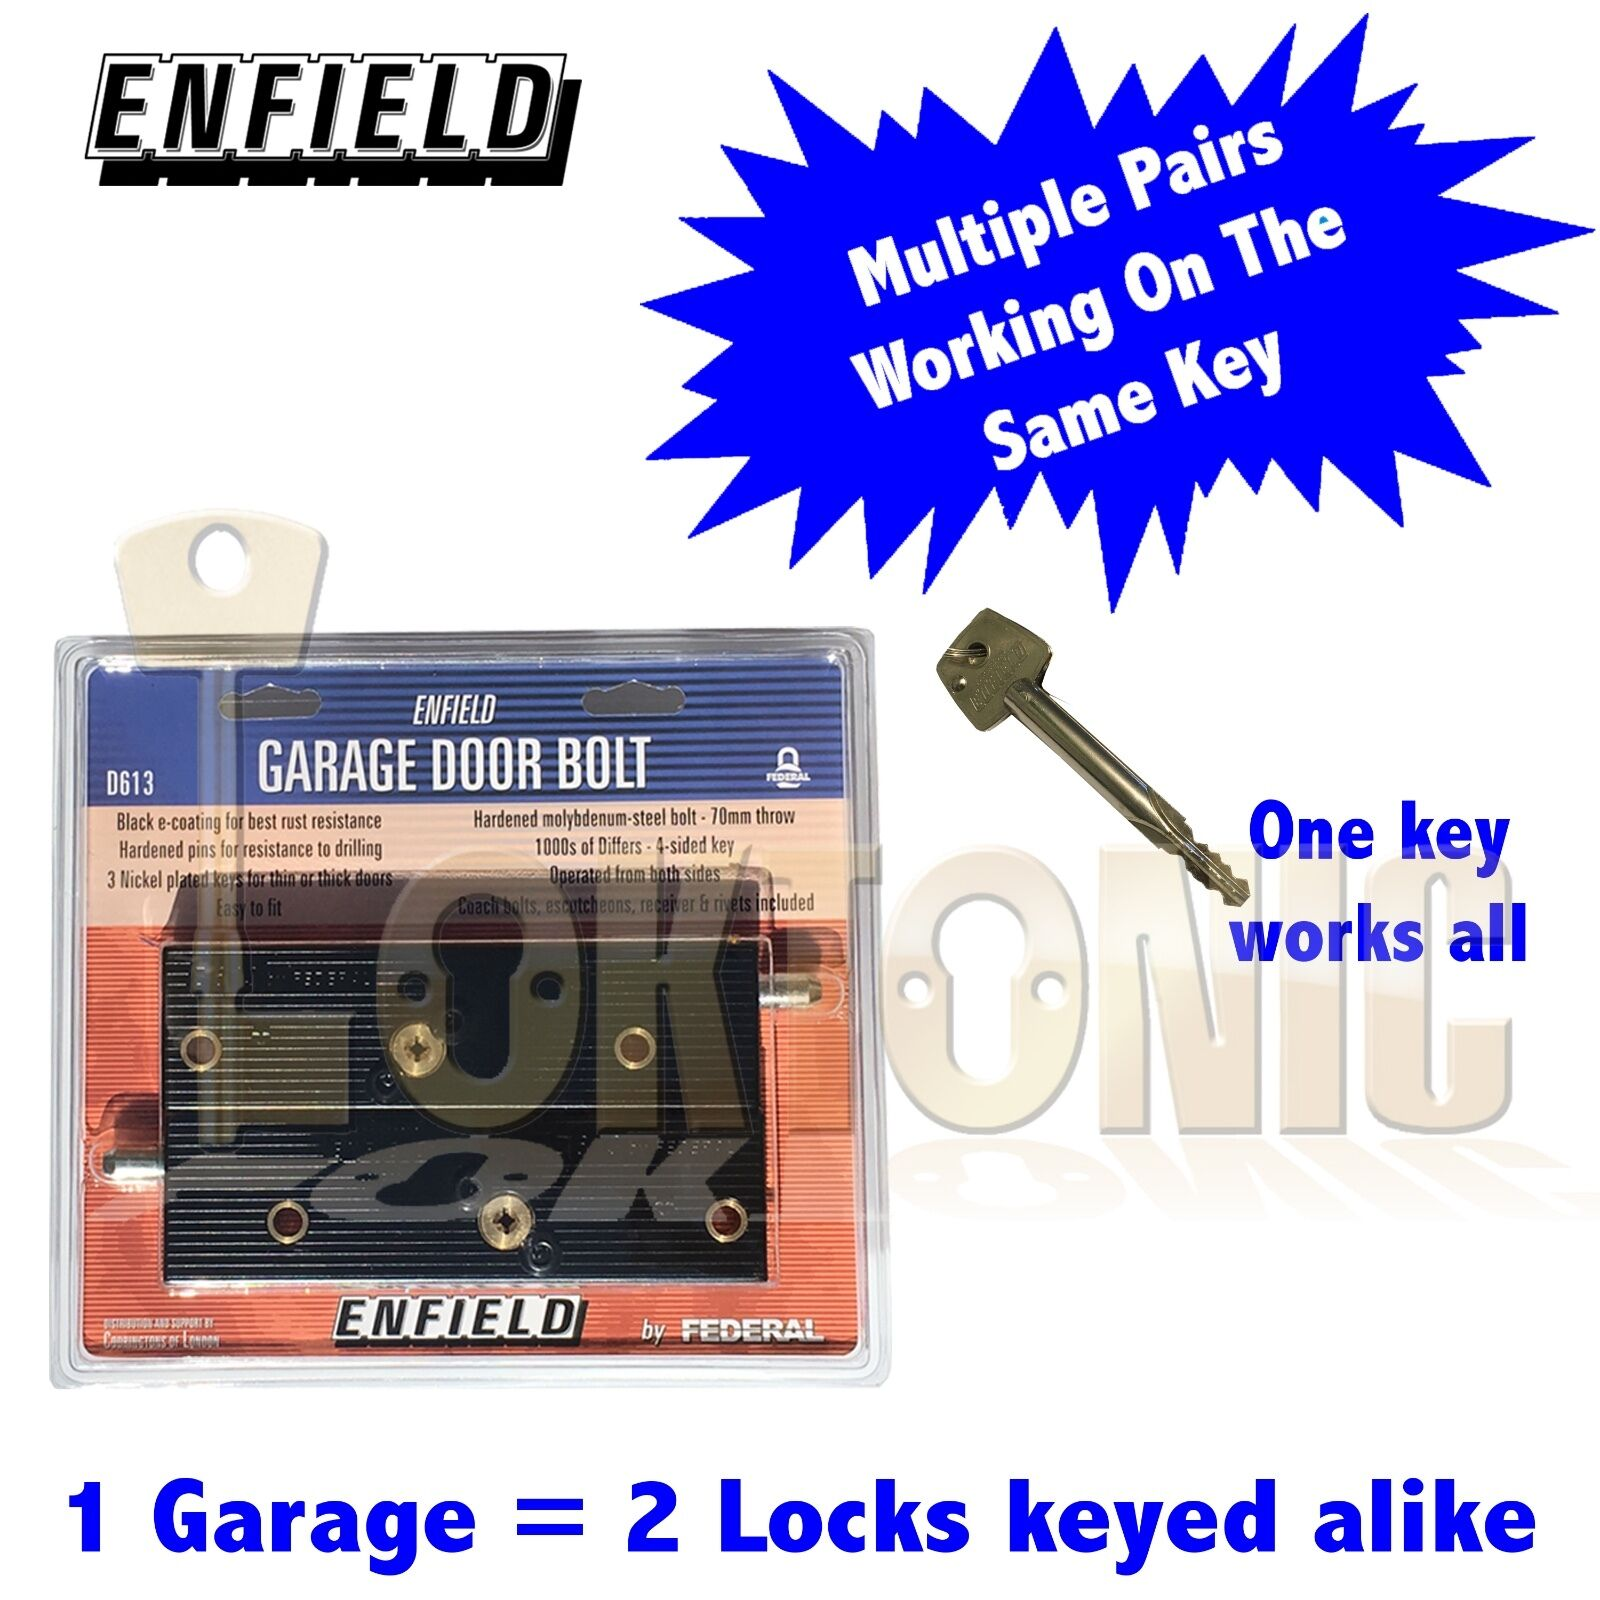 Enfield D613 Garage Door Bolts Locks Multiple Pairs All